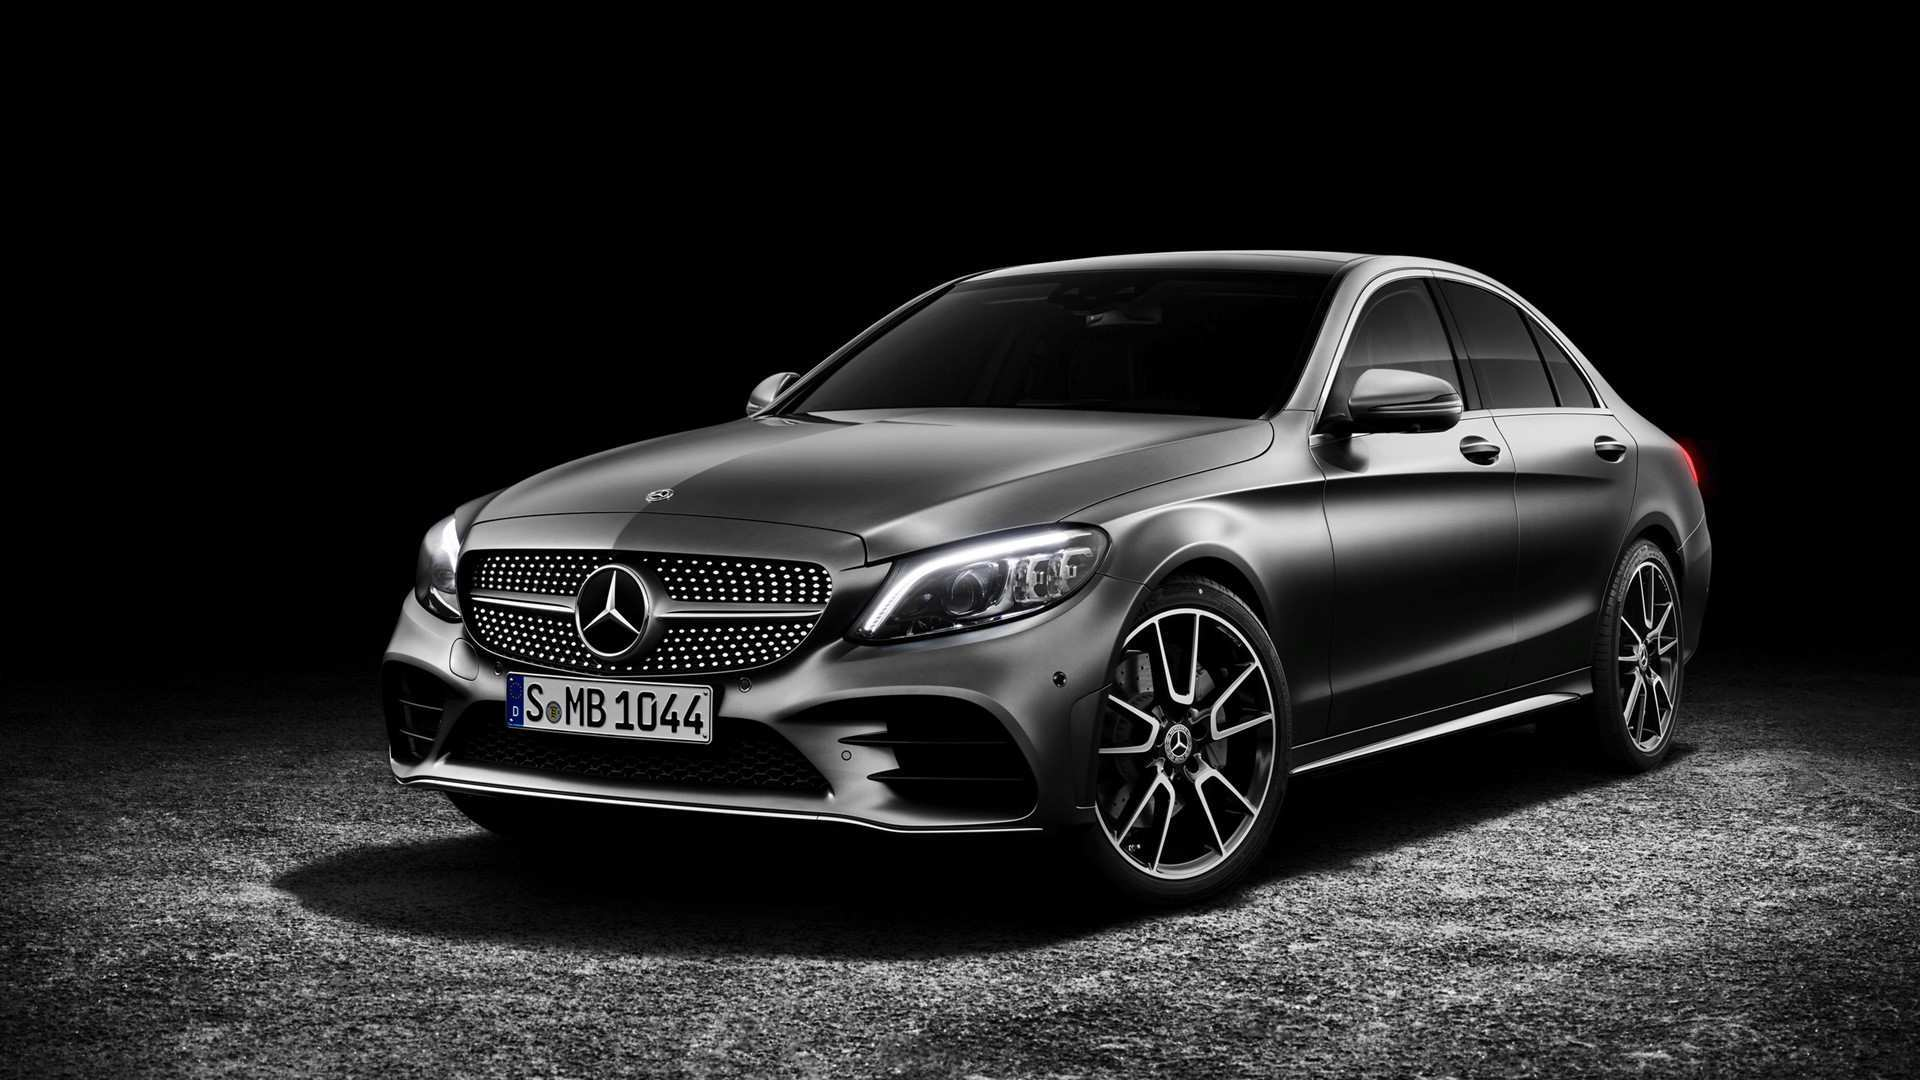 45 A Pictures Of 2019 Mercedes Benz New Review